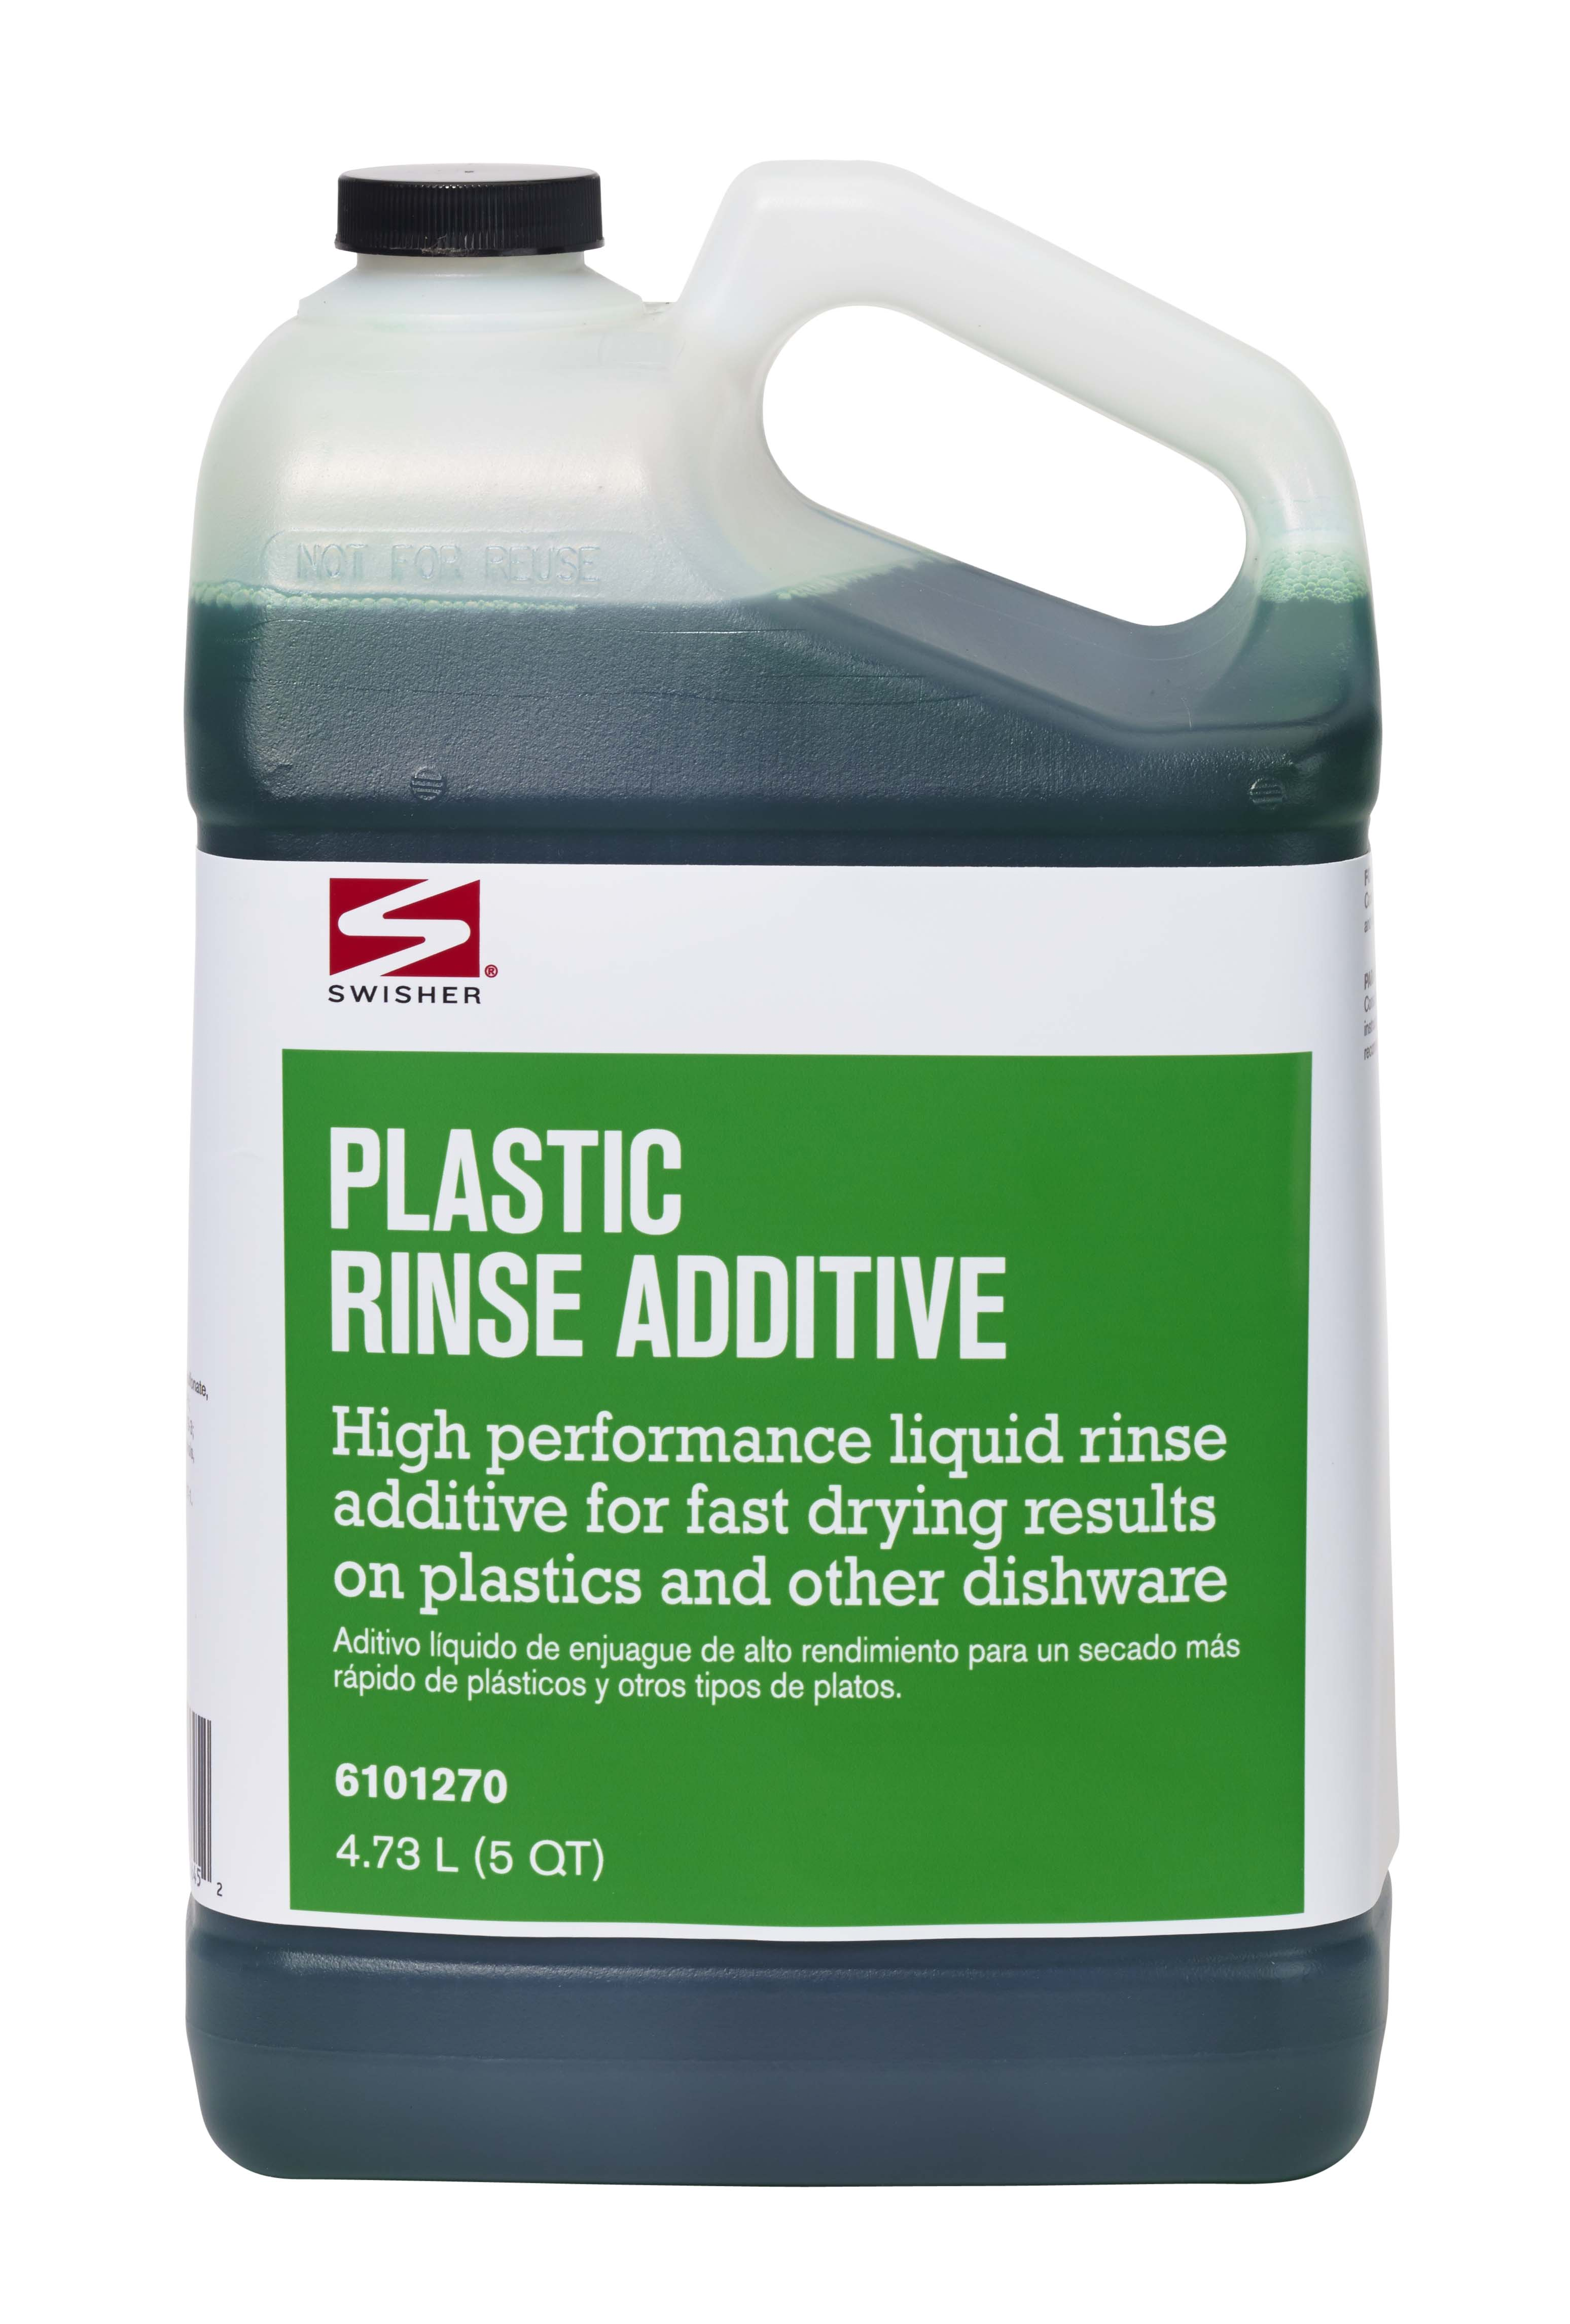 Swisher Plastic Rinse Additive